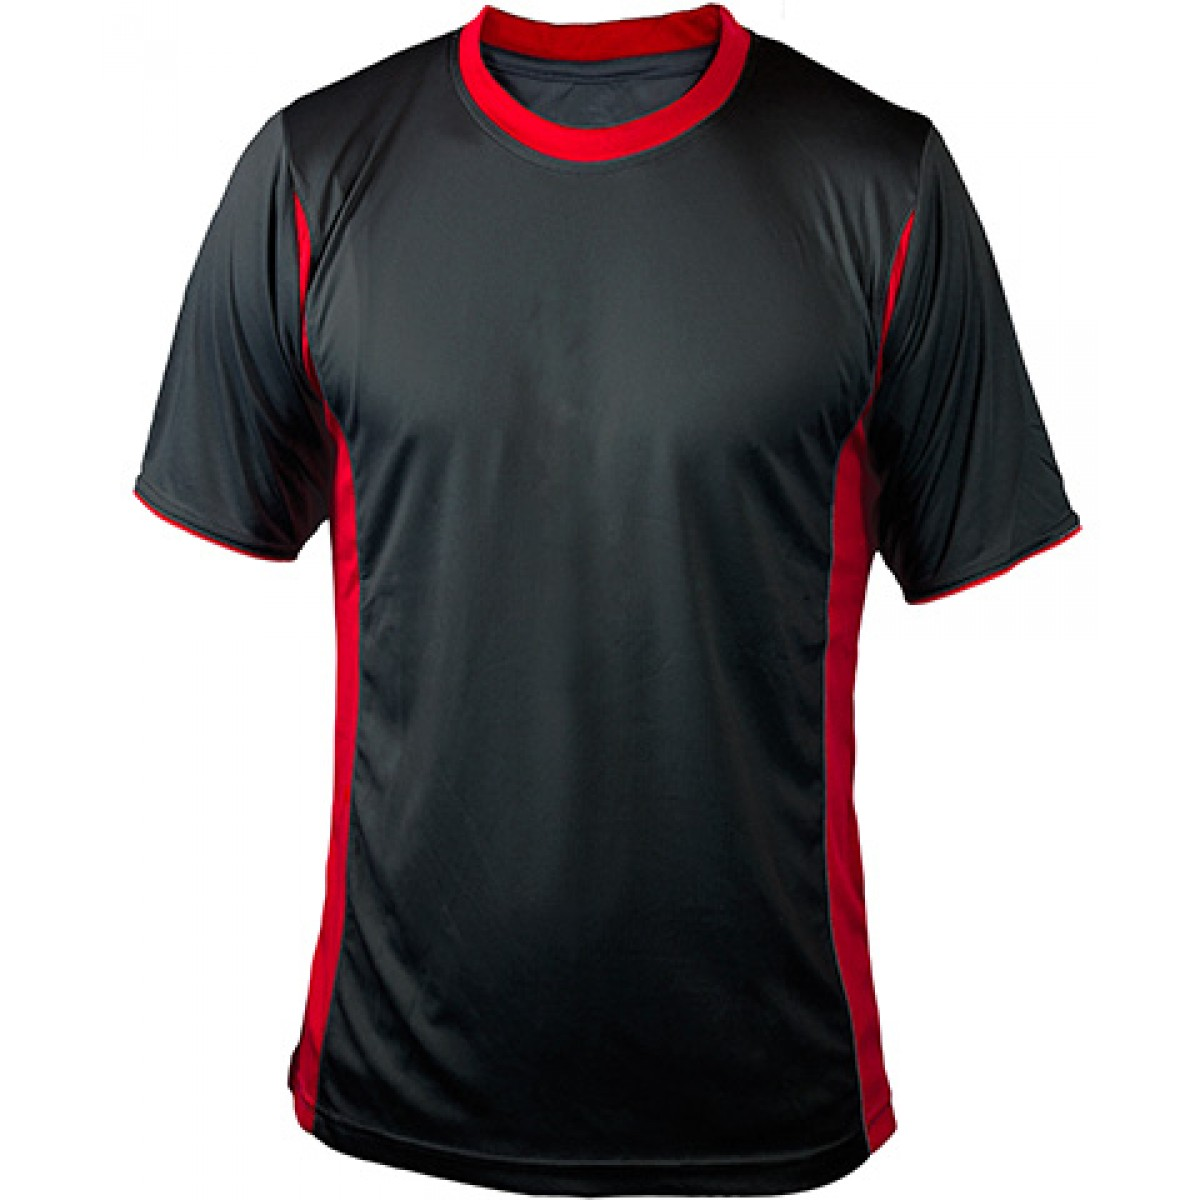 Black Short Sleeves Performance With Red Side Insert-Black-3XL